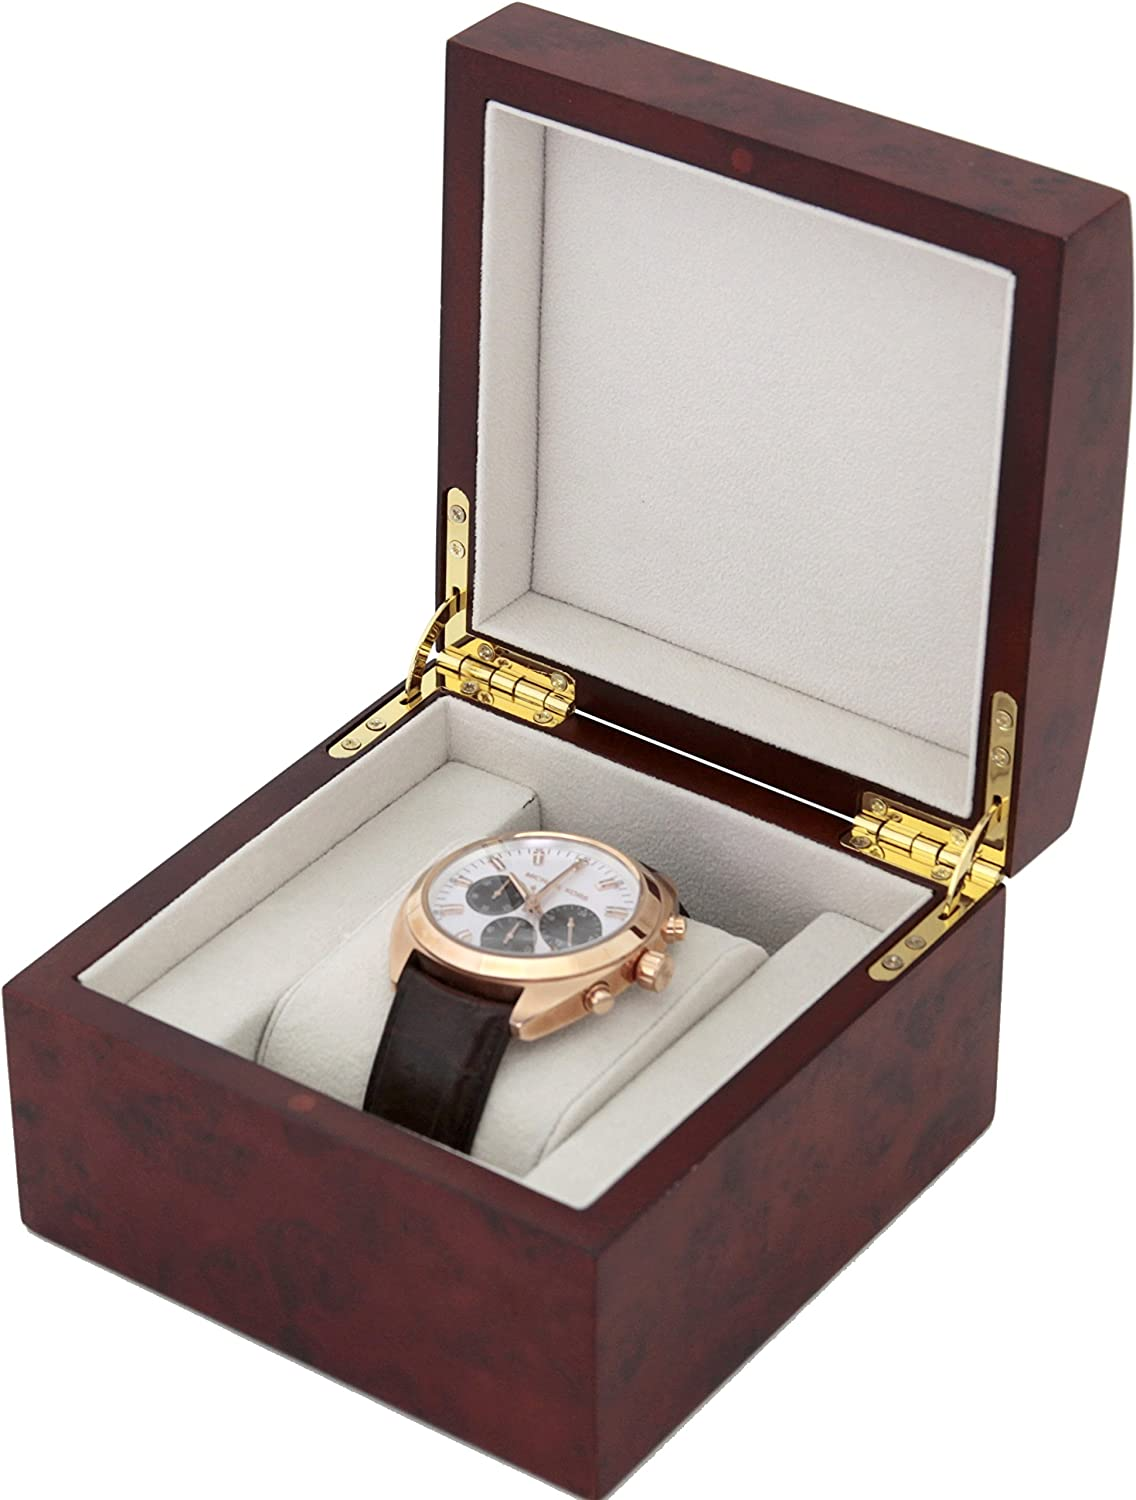 B000SE0BK2 Single Watch Box 1 Extra Large Watch Wood Removable Cushion 81lOxfqF0RL